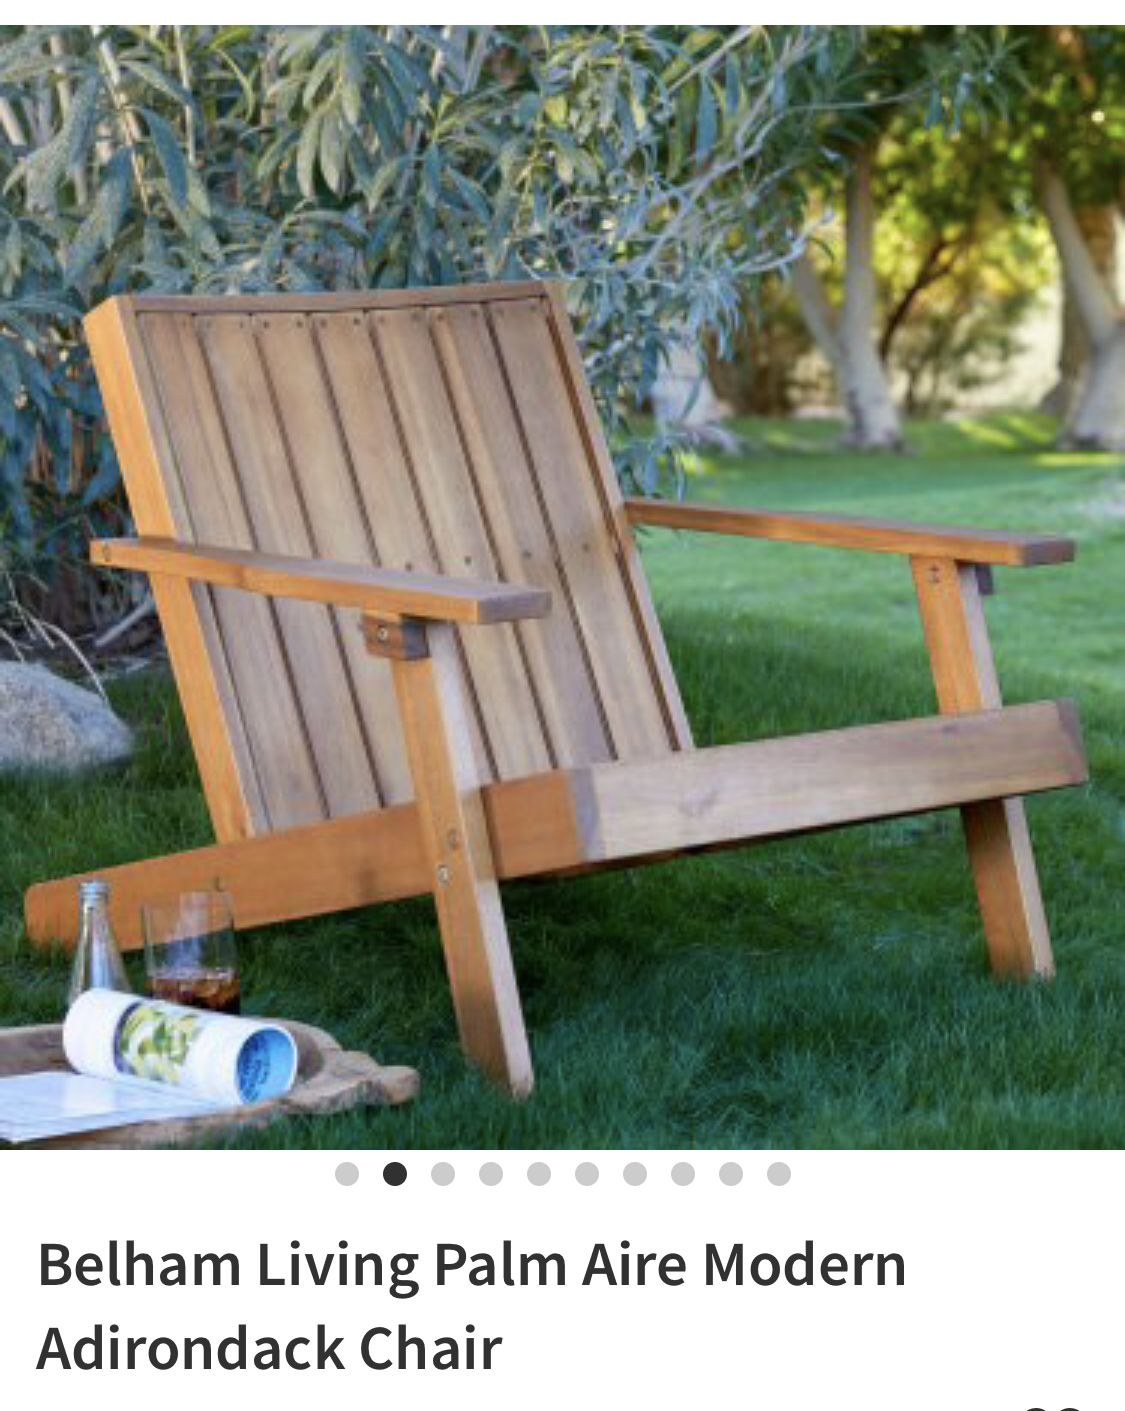 Modern Adirondack Chair Image By Lillbow On O U T S I D E